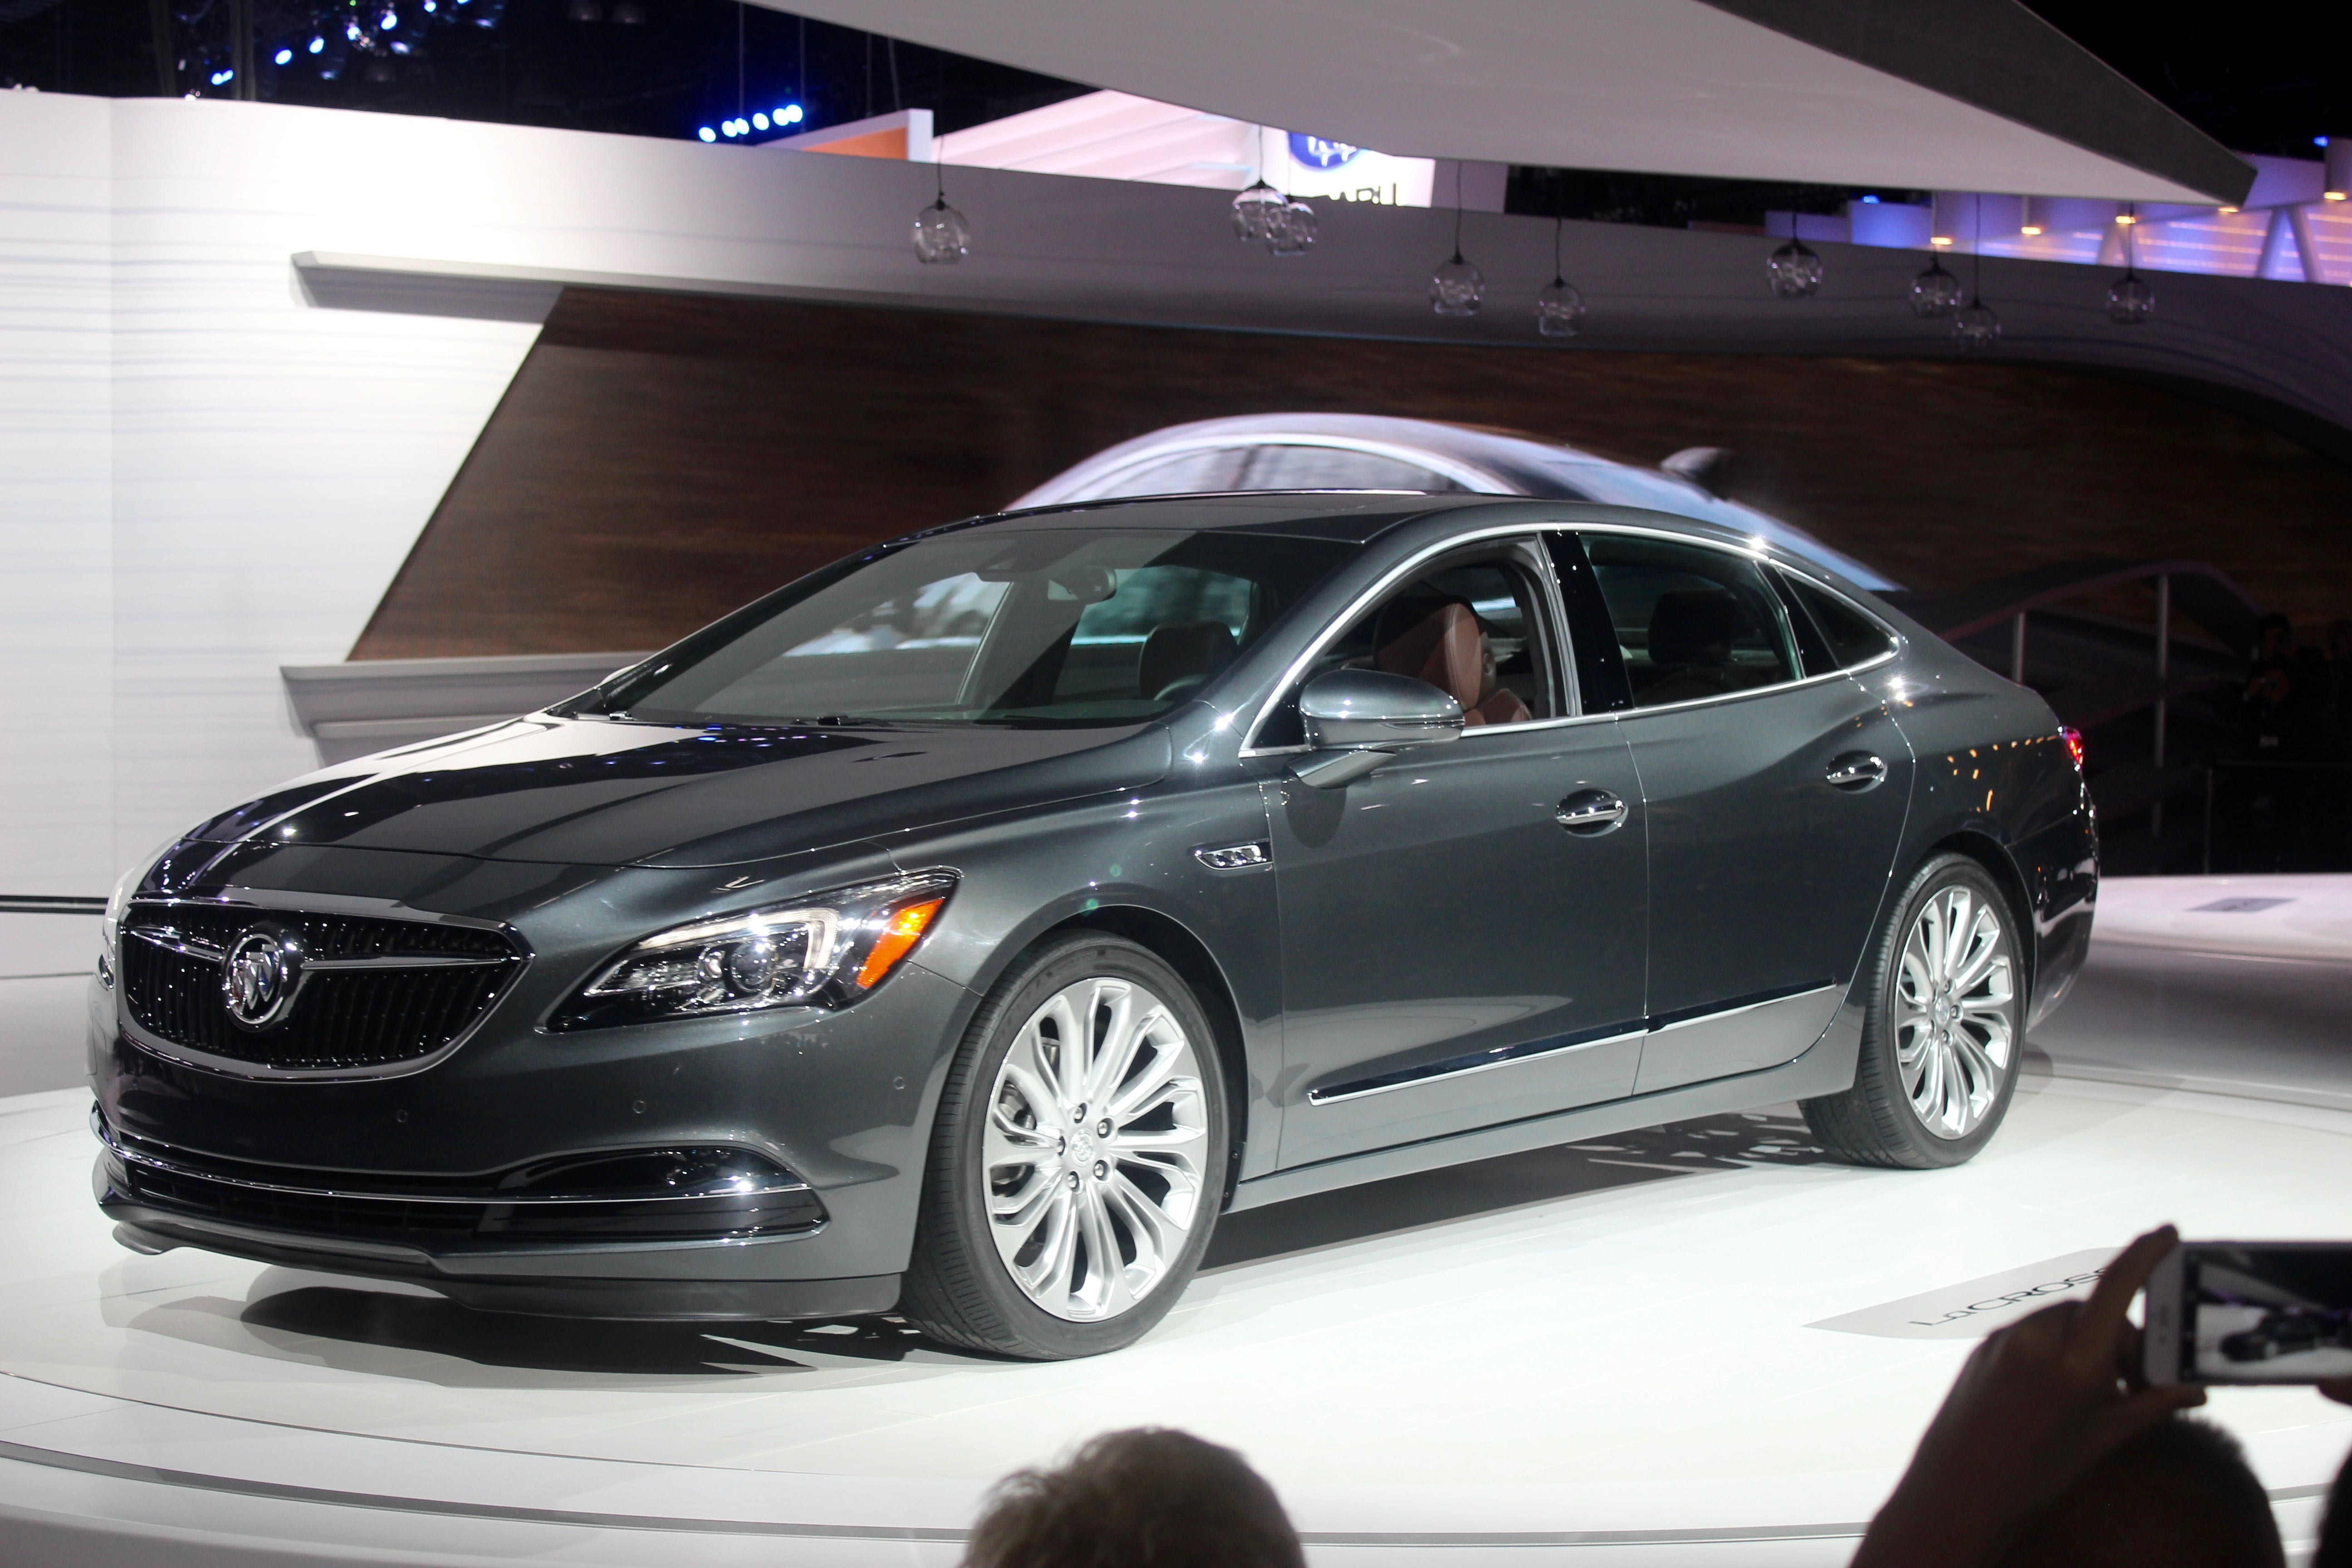 this featured reliability news leads buick shield cr cars verano brand recognition to tri in article